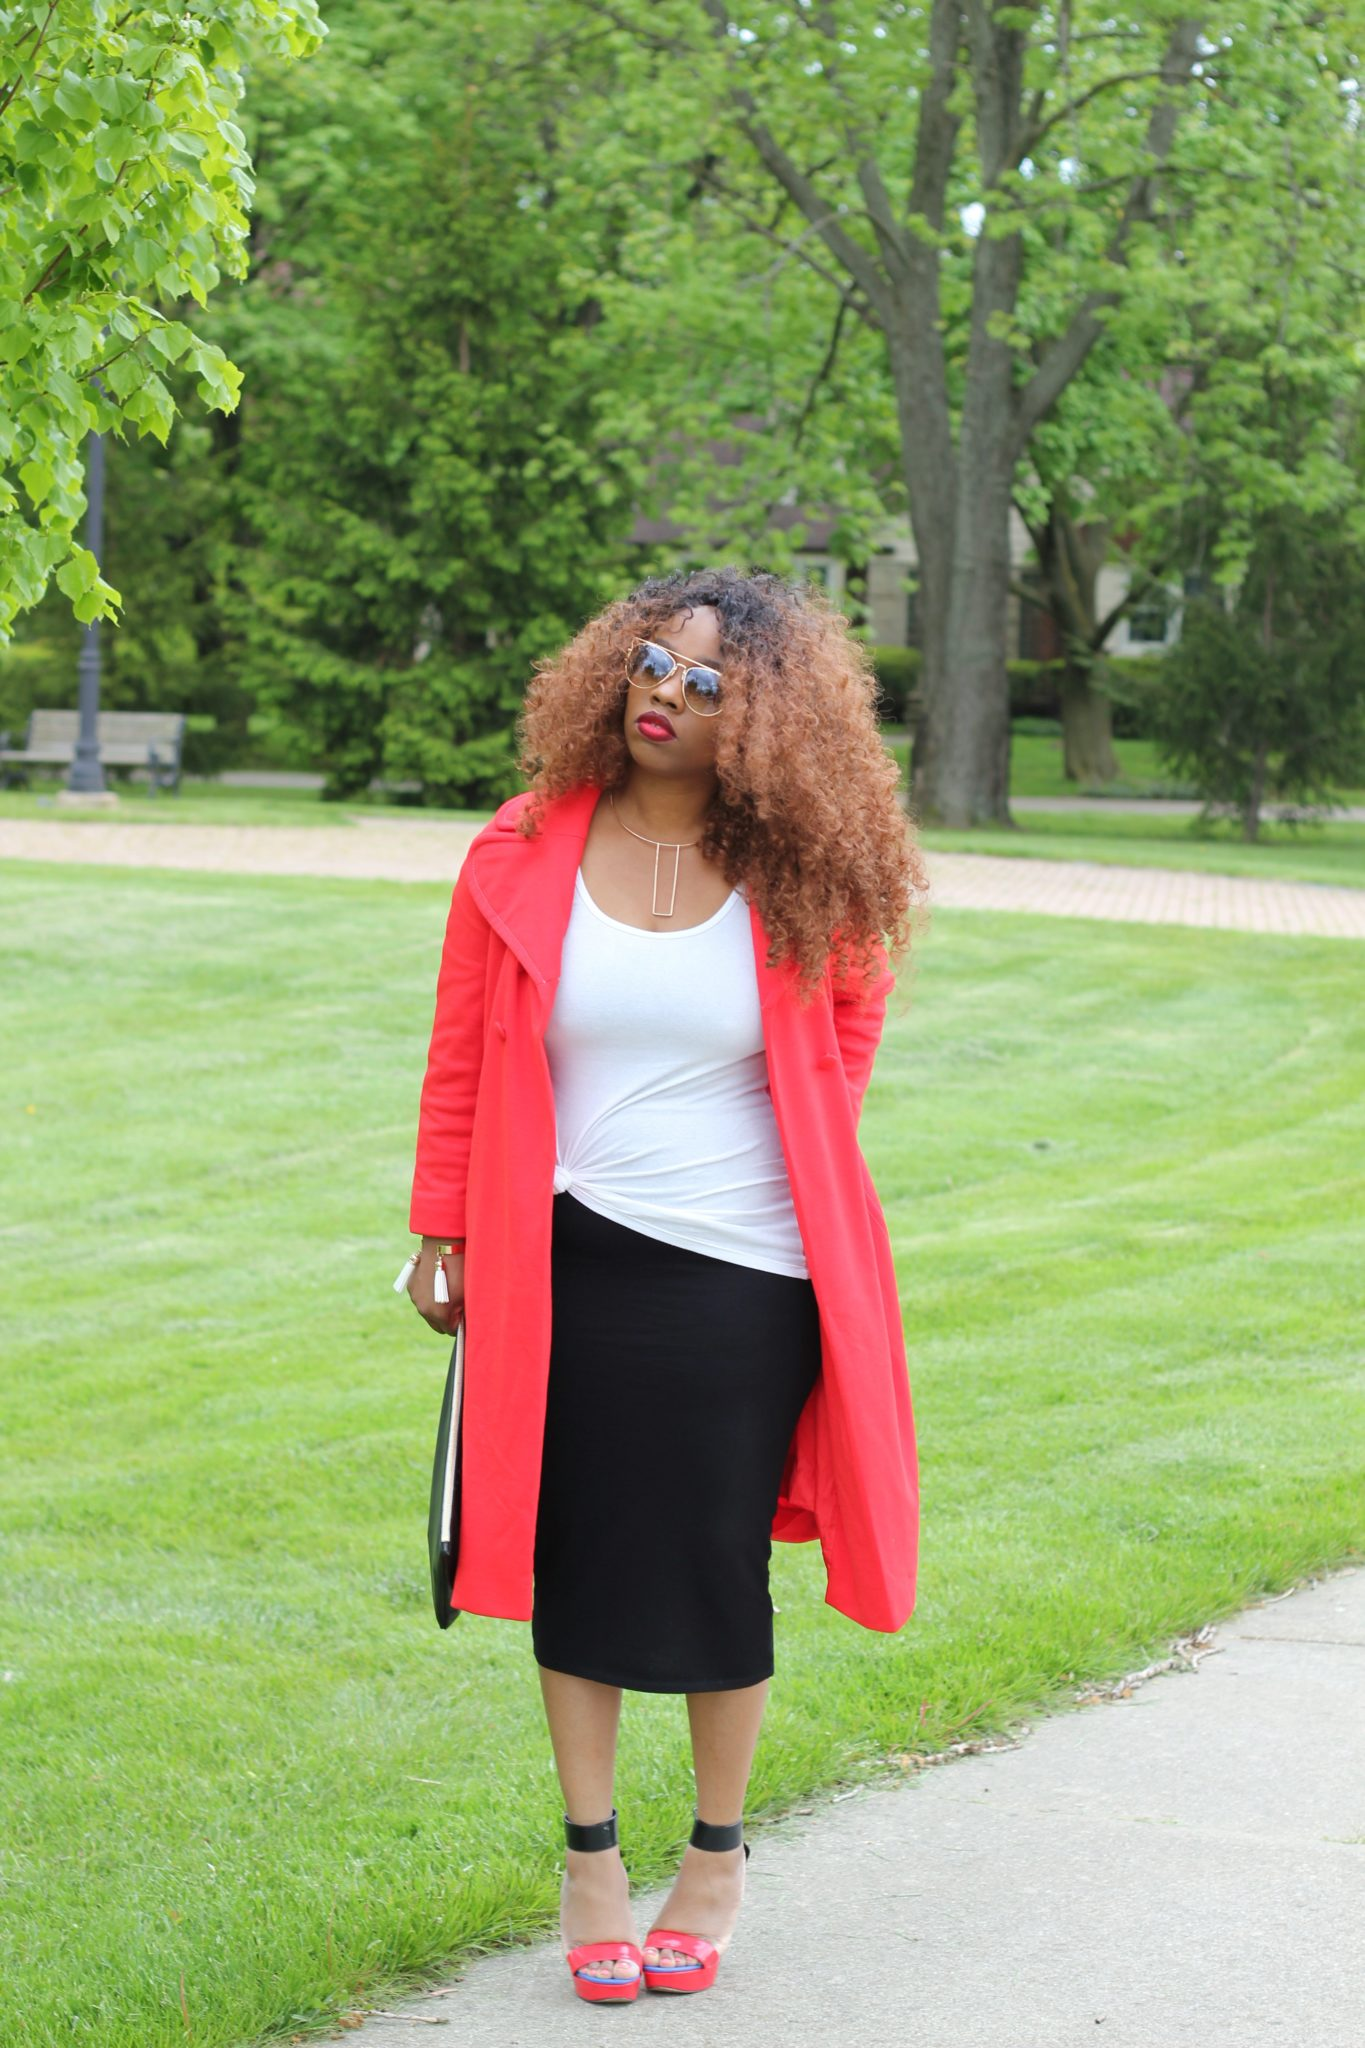 img_5698 The Concept of Color BlockAmerican Apparel Fashion Fashion Nova Forever 21 Layered Chains Neon Wild OOTD Spring 2016 Style How To's: Style Inspiration Styling Thrifting Uncategorized UrbanOg